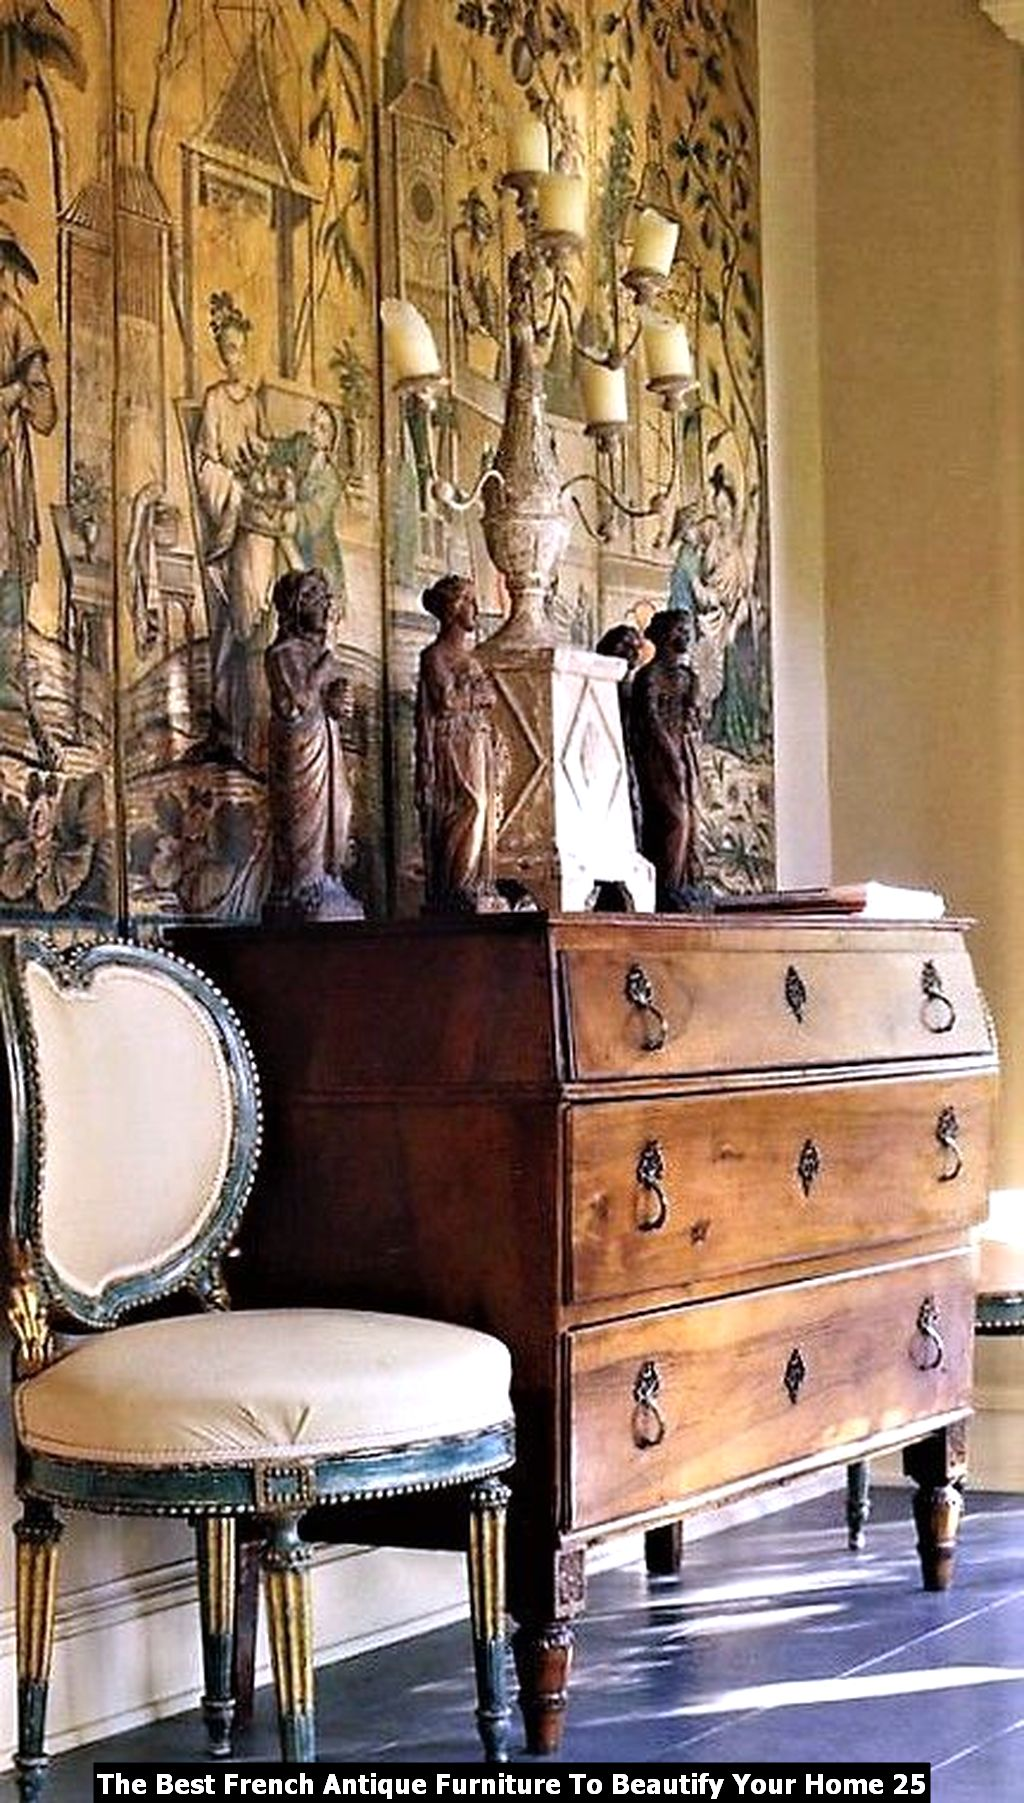 The Best French Antique Furniture To Beautify Your Home 25